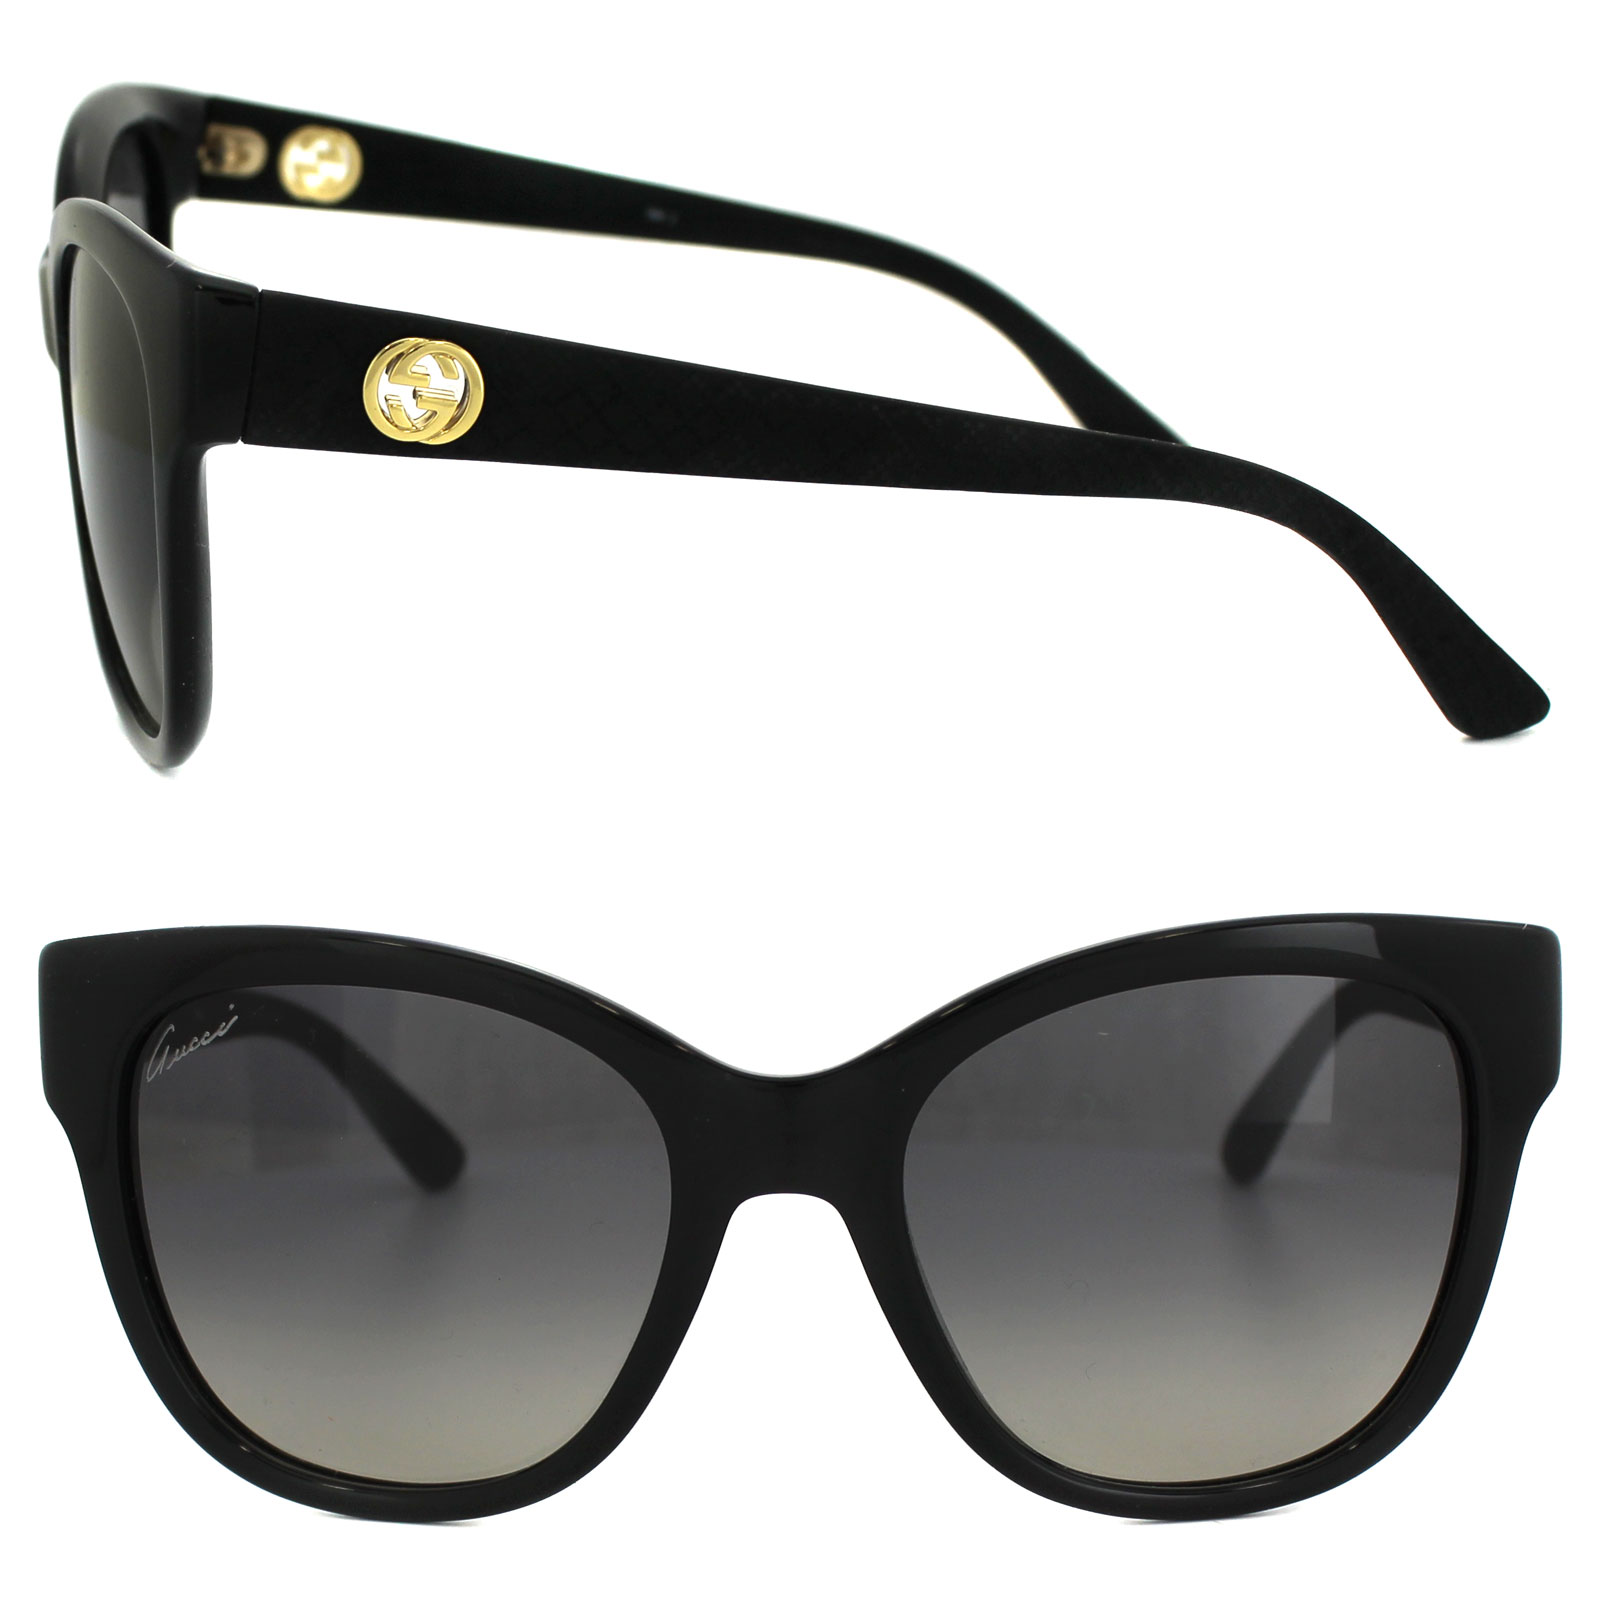 Cheap Gucci 3786 Sunglasses Discounted Sunglasses